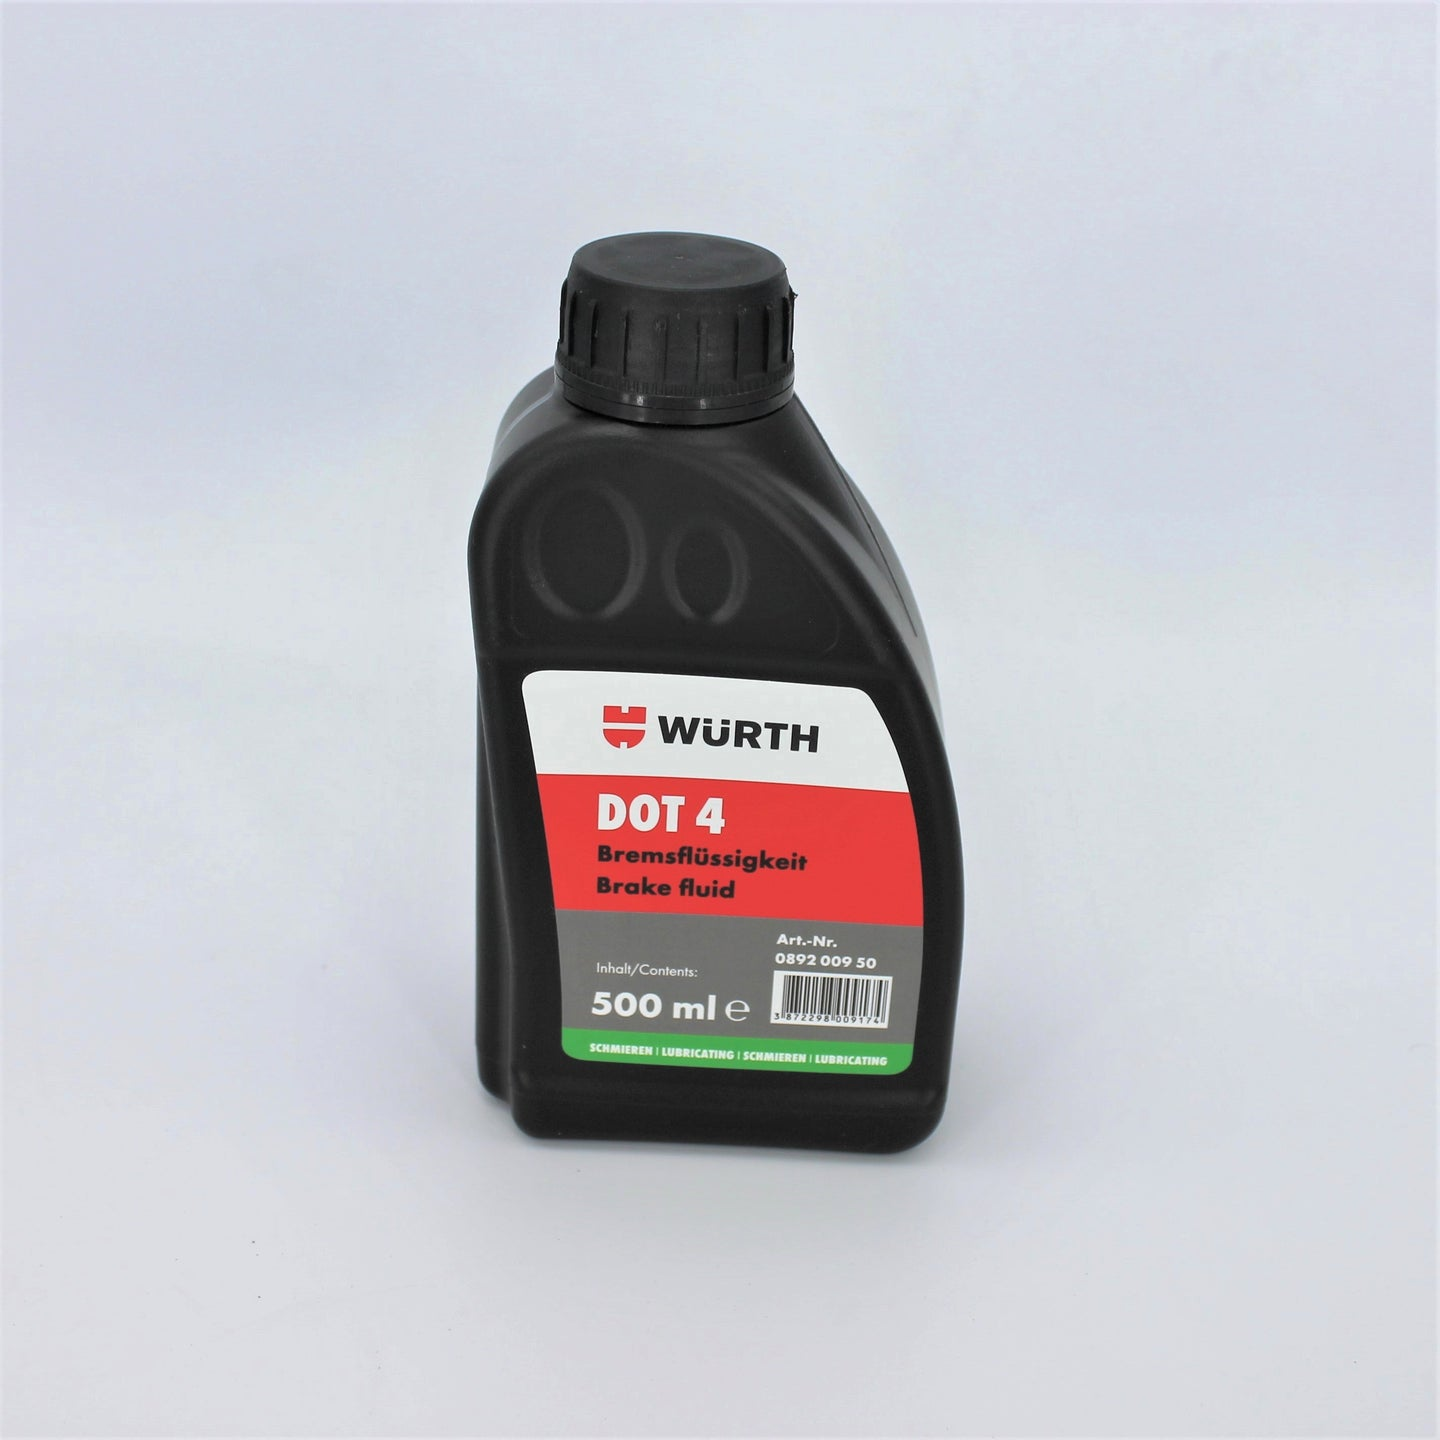 WURTH BRAKE FLUID DOT 4